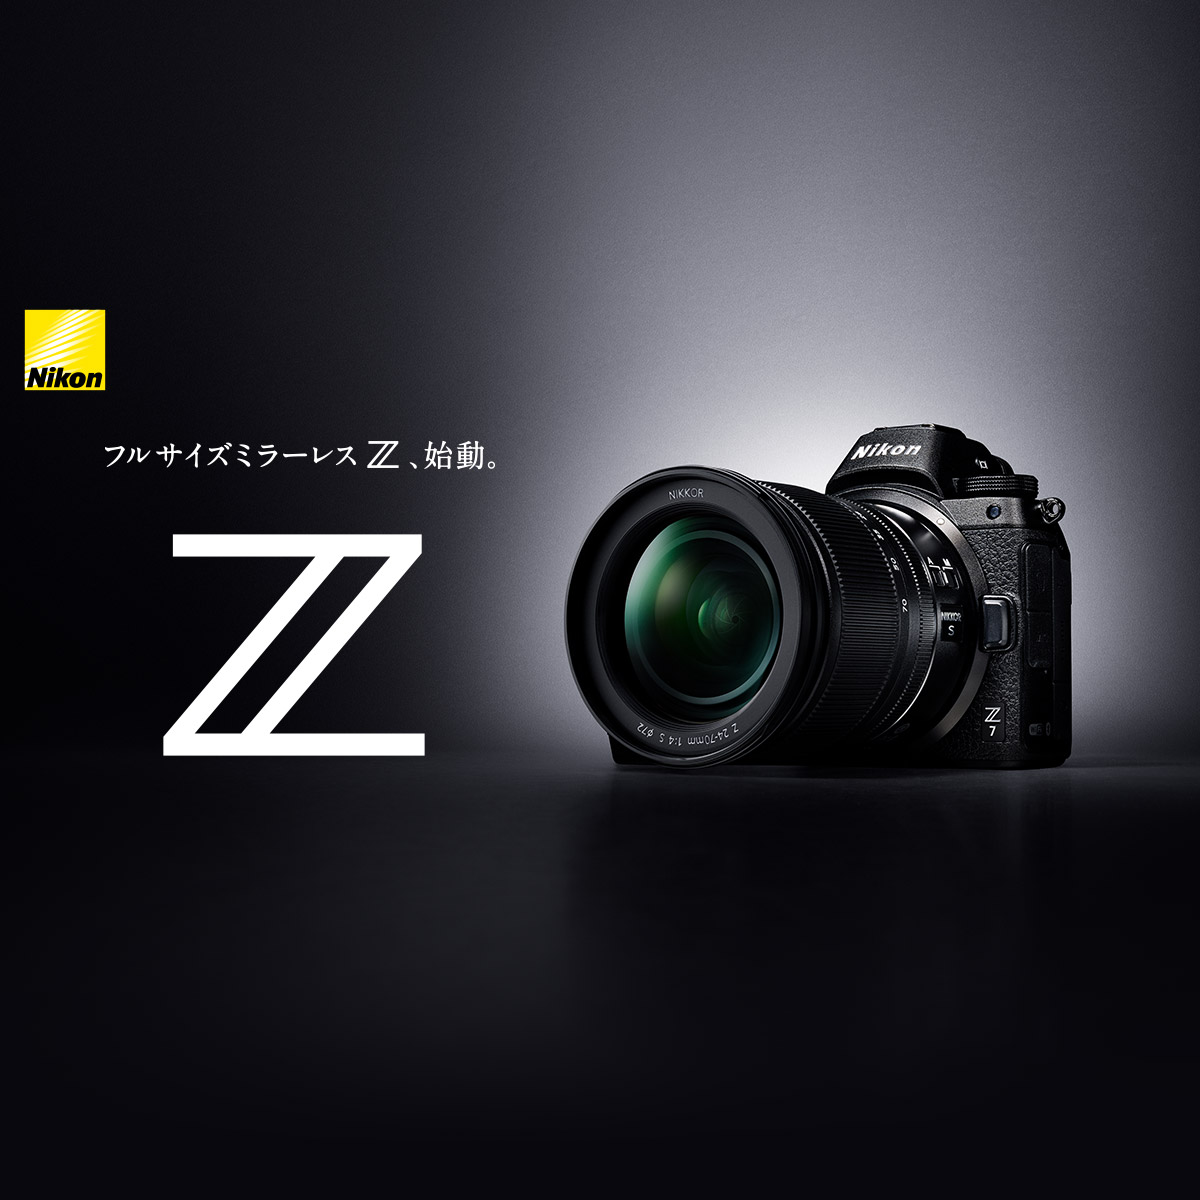 Sendai Factory Media Tour Qa Currently Nikon Makes 20k Z7 Where To Get Parts Diagram For A D5000 Slr With Dx Vr Afs Here Is Translation Of The Sessions Published By Myzaker After Z6 And Cameras Are Made